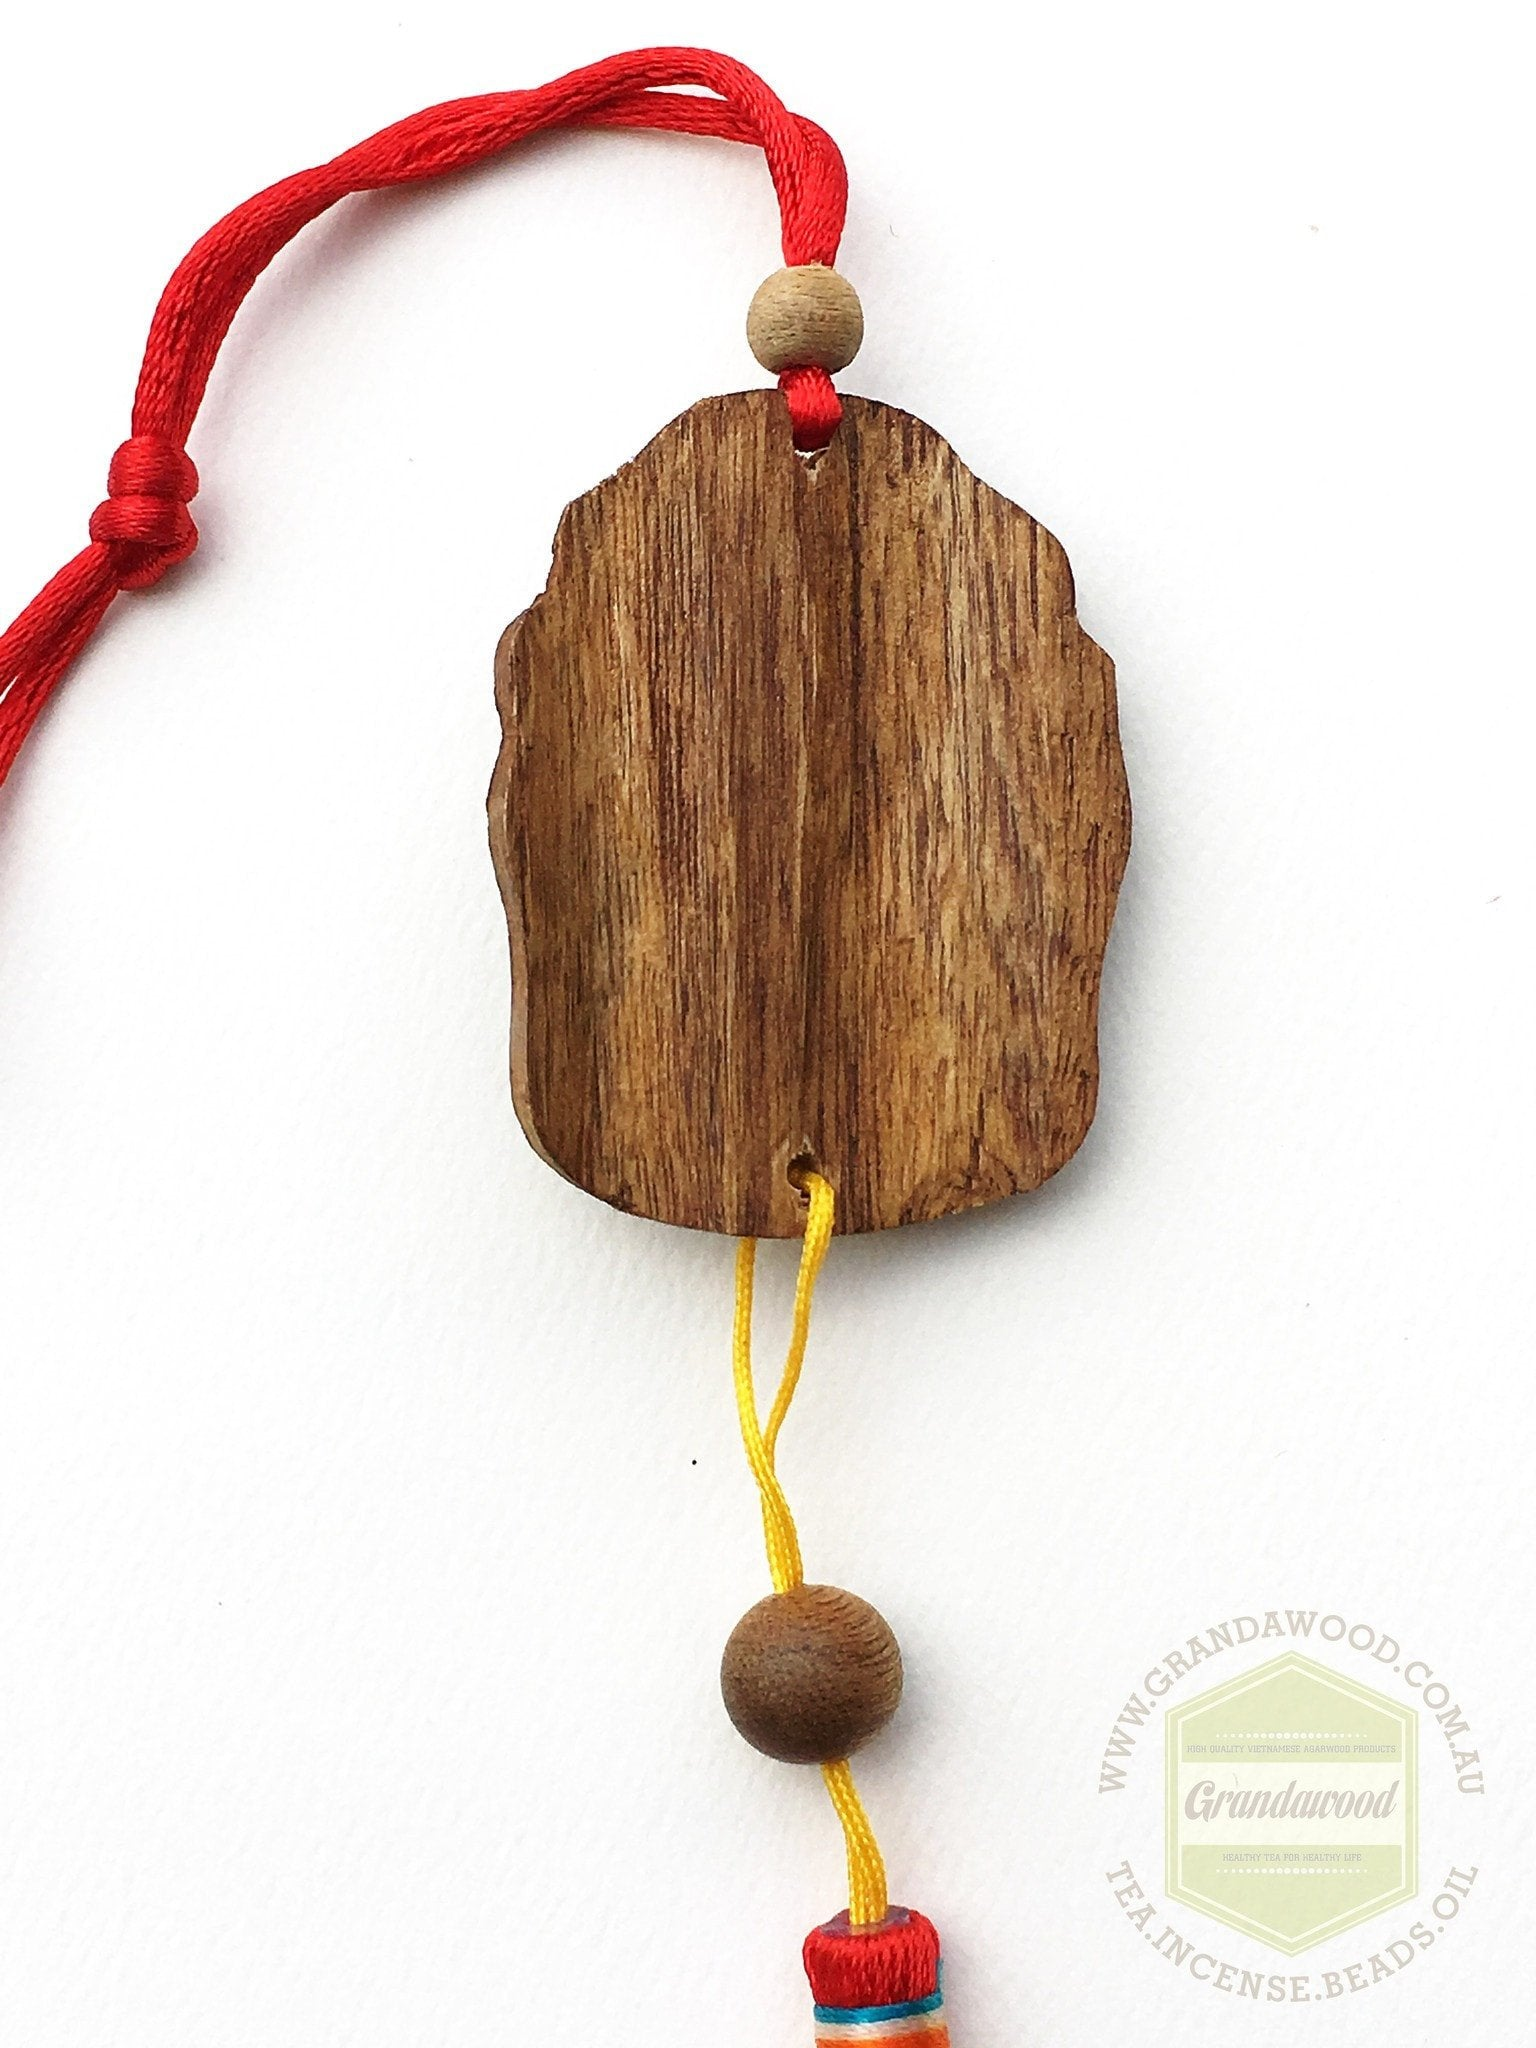 *SOLD* Cultivated Agarwood Car Hanger- Buddha Head - Grandawood- Agarwood Australia